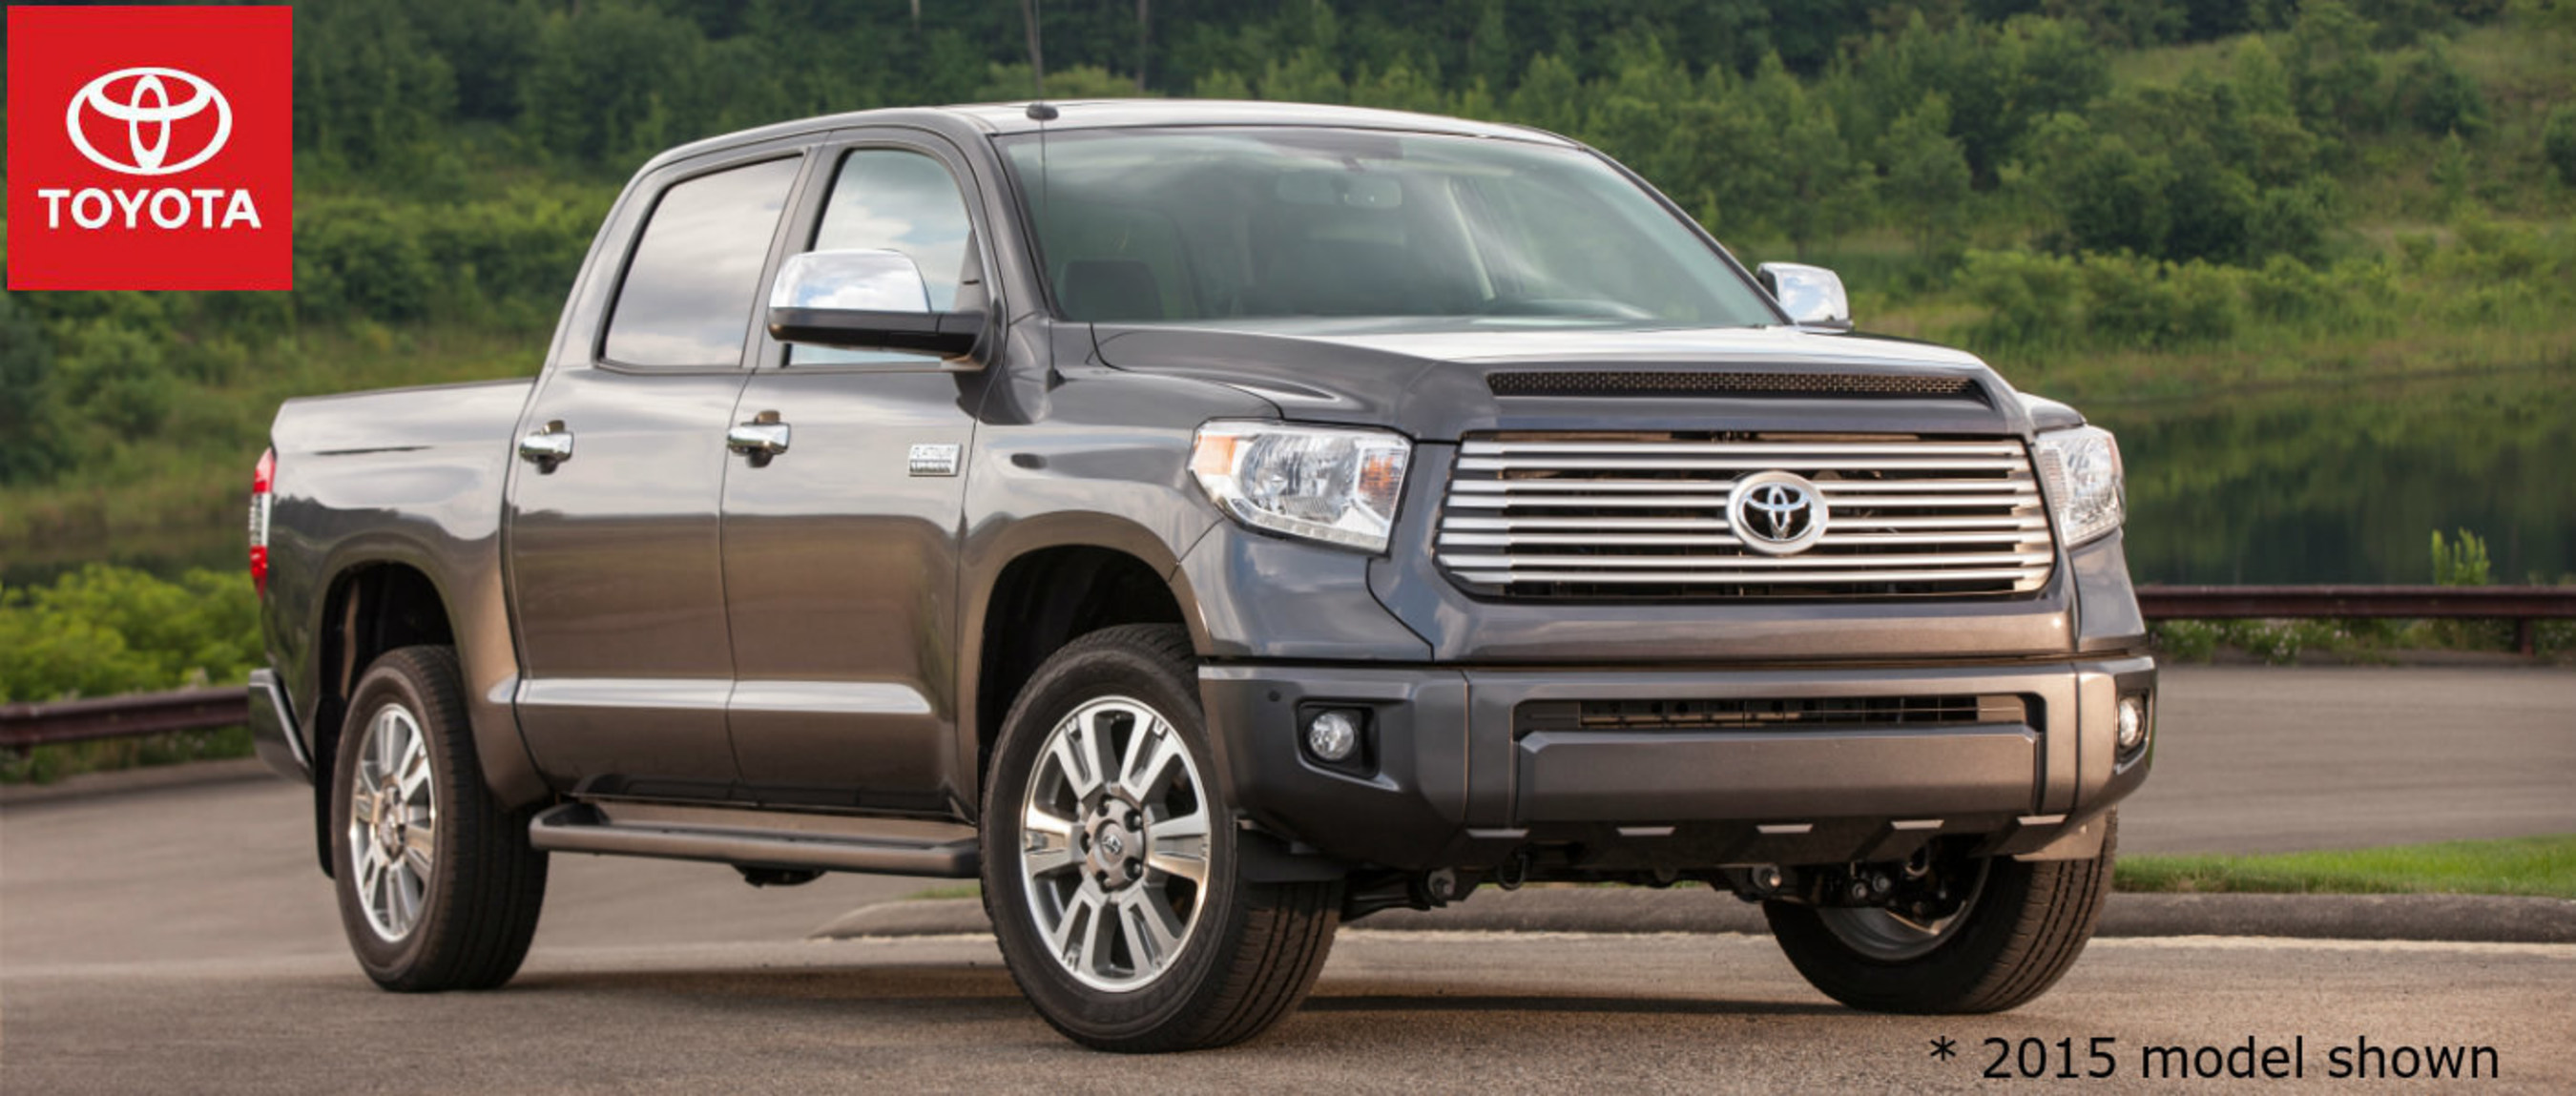 Toyota of Naperville preparing for changes to 2016 Tundra